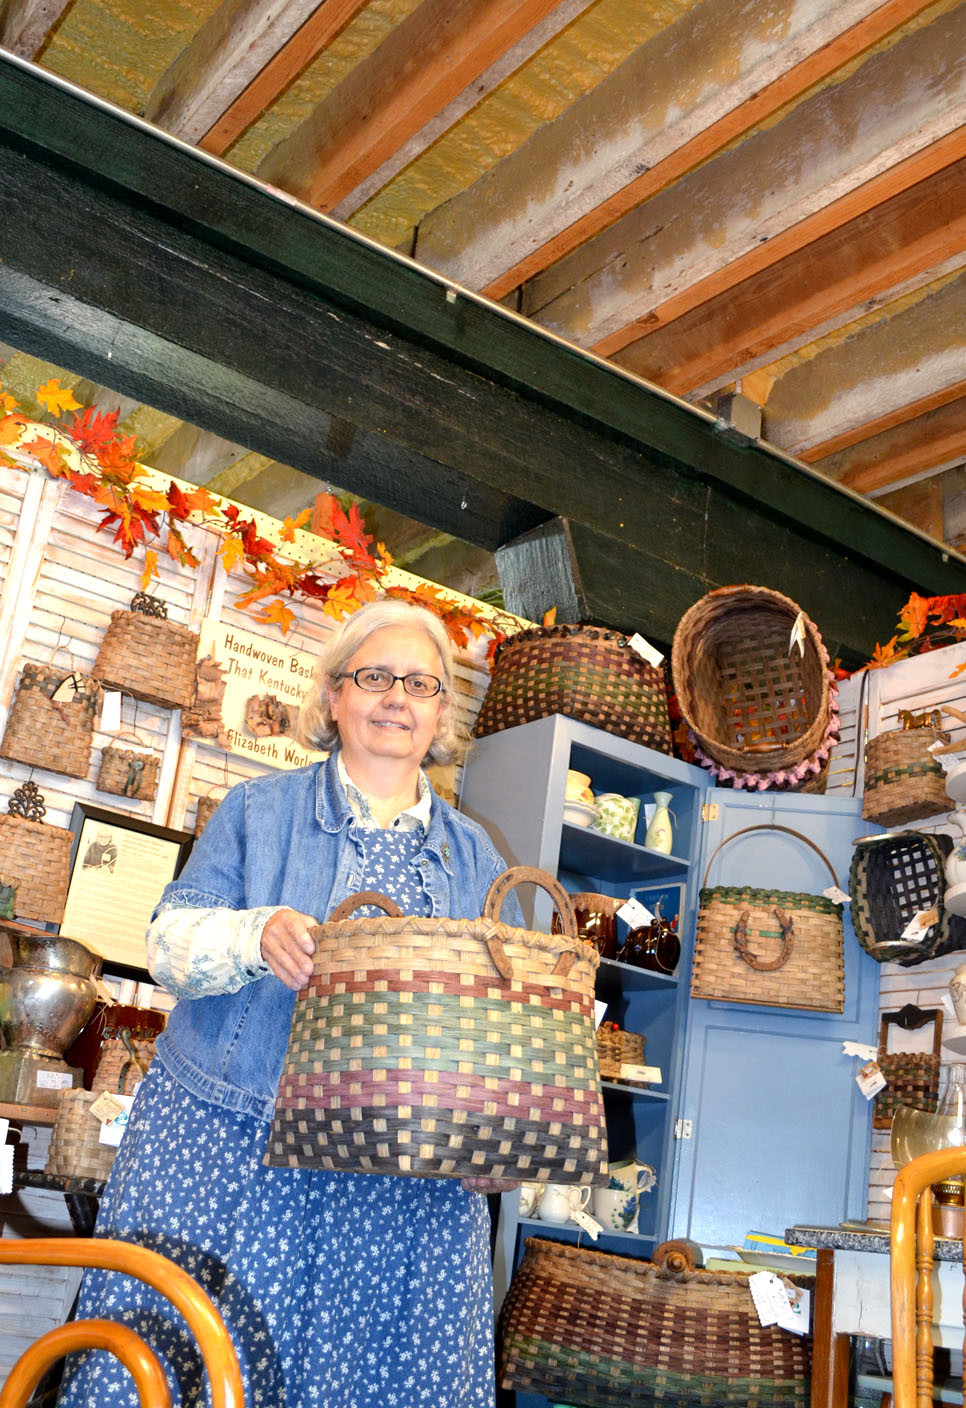 ELIZABETH WORLEY - better known as That Kentucky Lady -dips her handmade baskets in a natural walnut stain she makes herself. Worley also incorporates vintage kitchen, garden and other tools in her basket designs. She has a booth at Green Street Gifts & Antiques in downtown Versailles. (Photo by Bob Vlach)